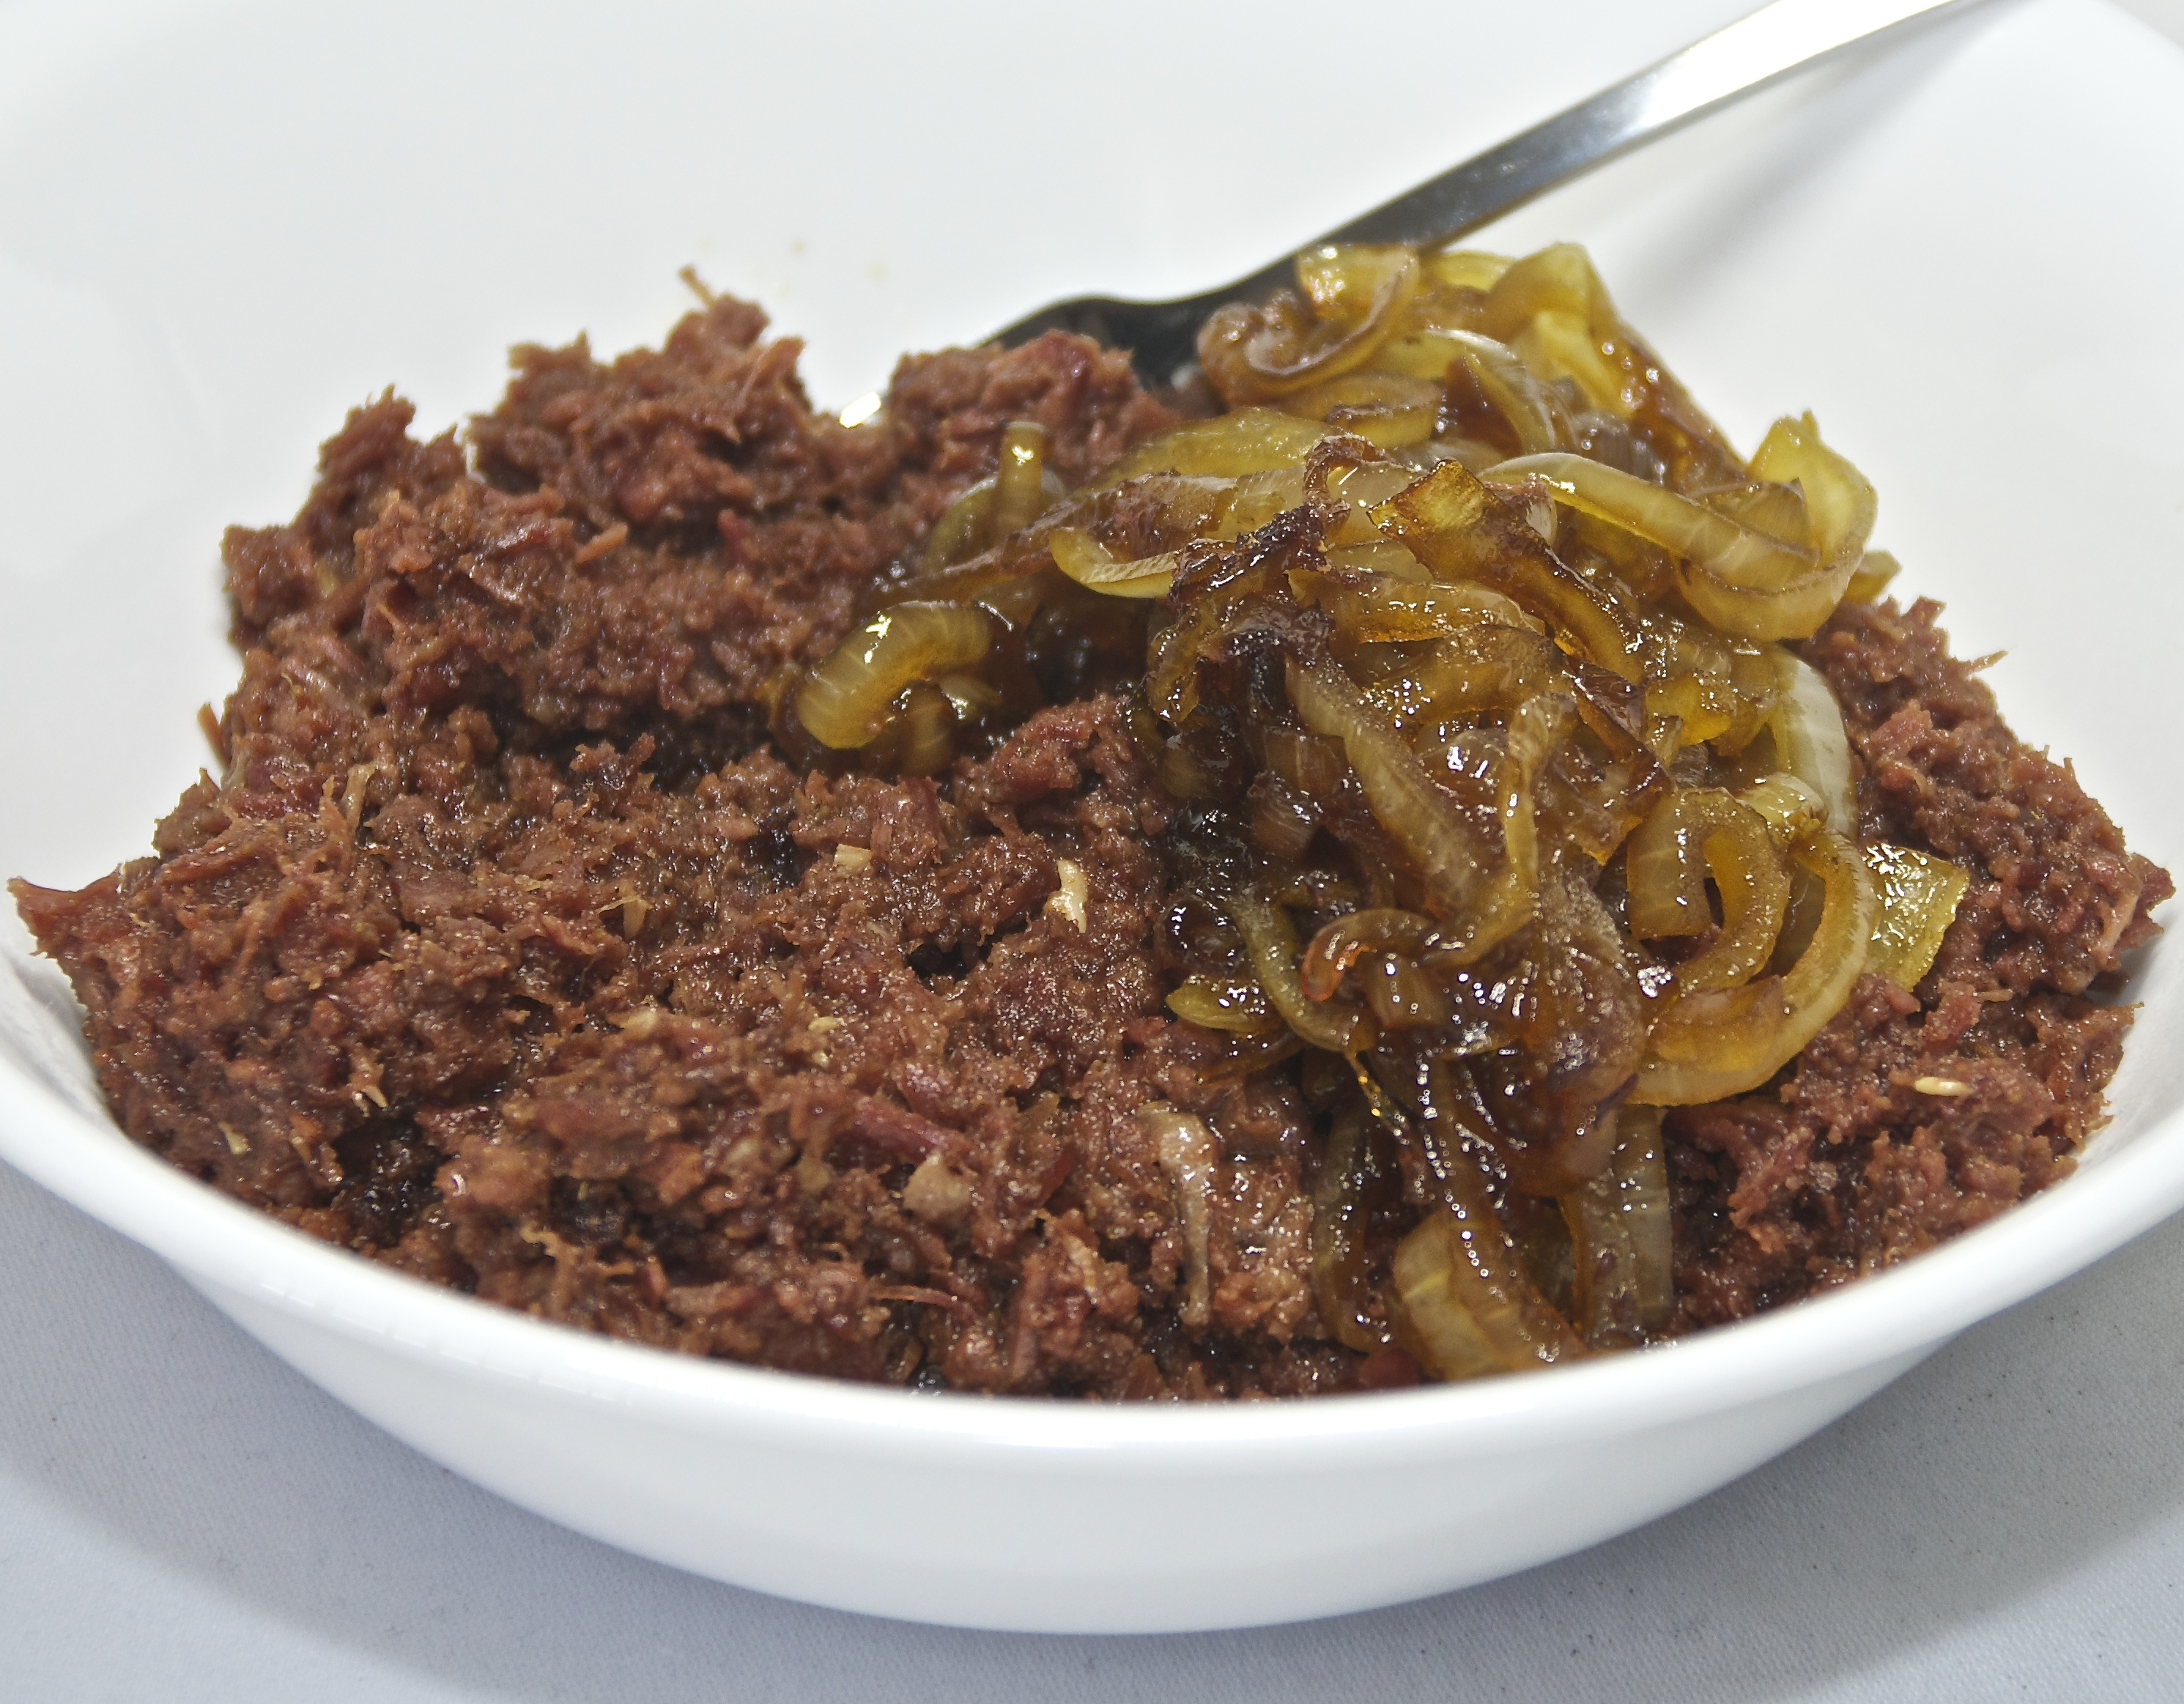 Curried corned beef and caramelised onion - Version 2